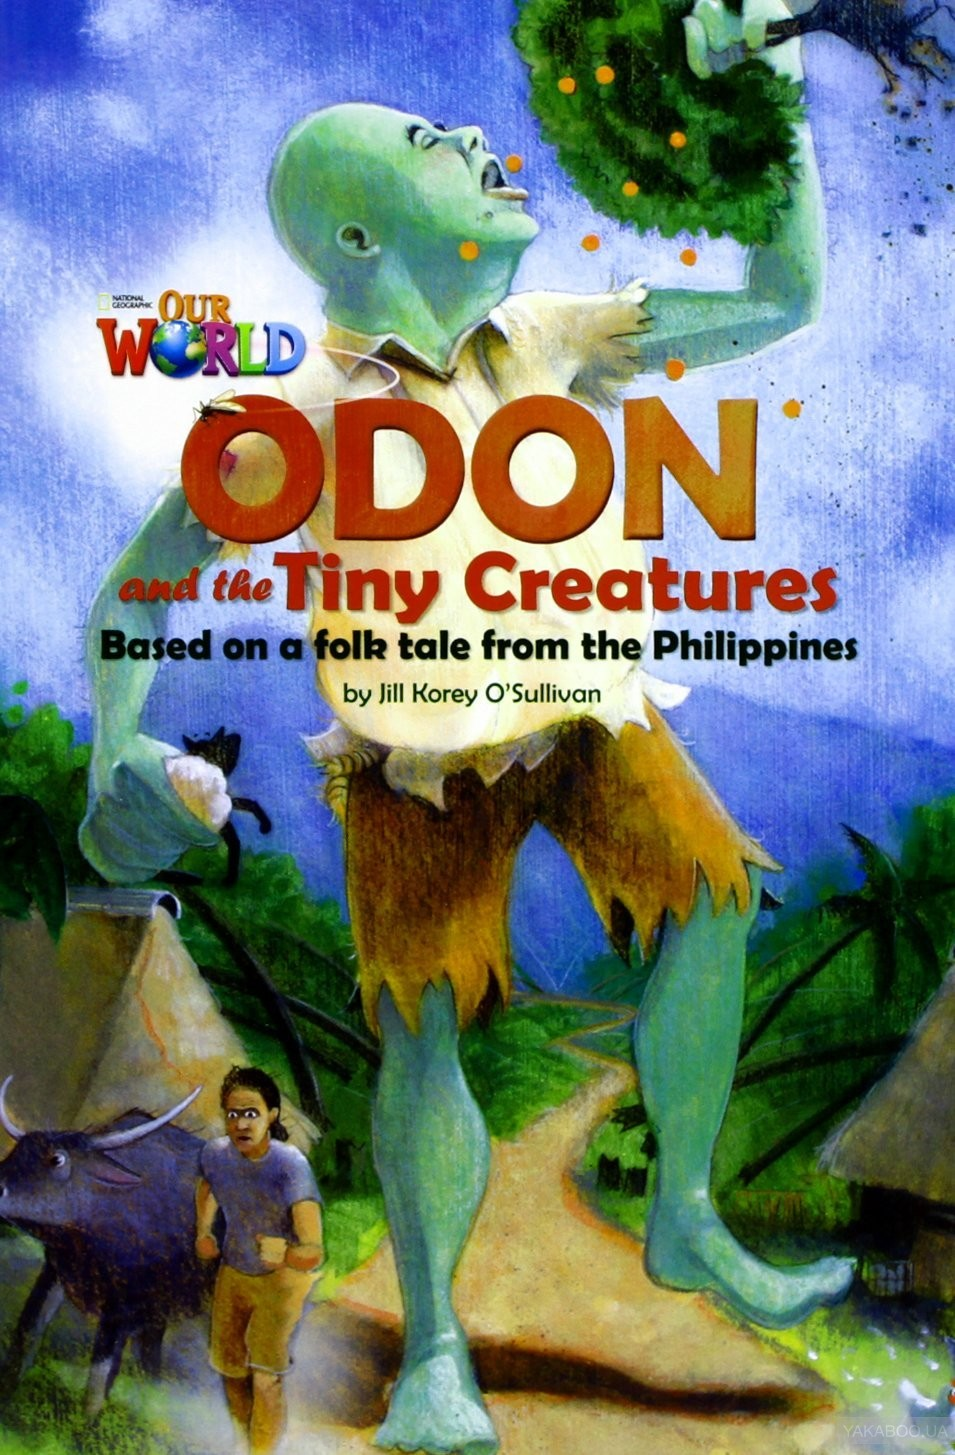 Odon and the Tiny Creatures